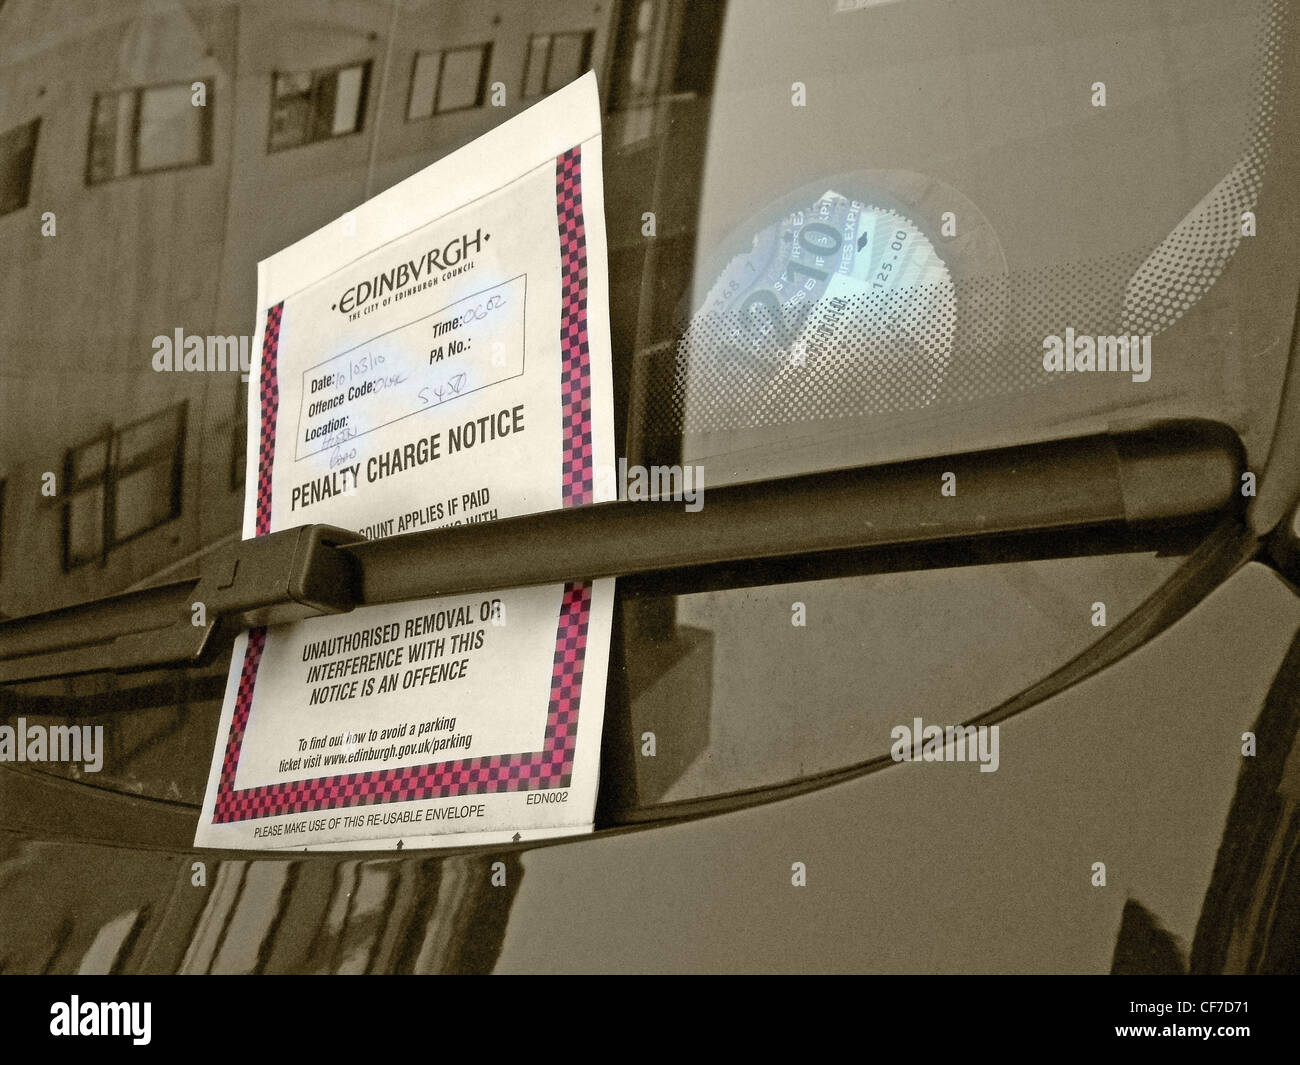 Edinburgh,parking,ticket,on,a,car,under,a,windscreen,wiper,in,Hulton,Road,Holyrood,Edinburgh,Scotland,UK,parking,warden,penalty,charge,notice,gotonysmith,do,not,remove,robbery,raising,cash,council,councils,local,authorities,authority,ripoff,britain,motorist,pay,paying,more,RAC,AA,LEcosse Edimbourg Schotland Schottland La Scozia Edimburgo Escocia Edimburgo,gotonysmith,Buy Pictures of,Buy Images Of